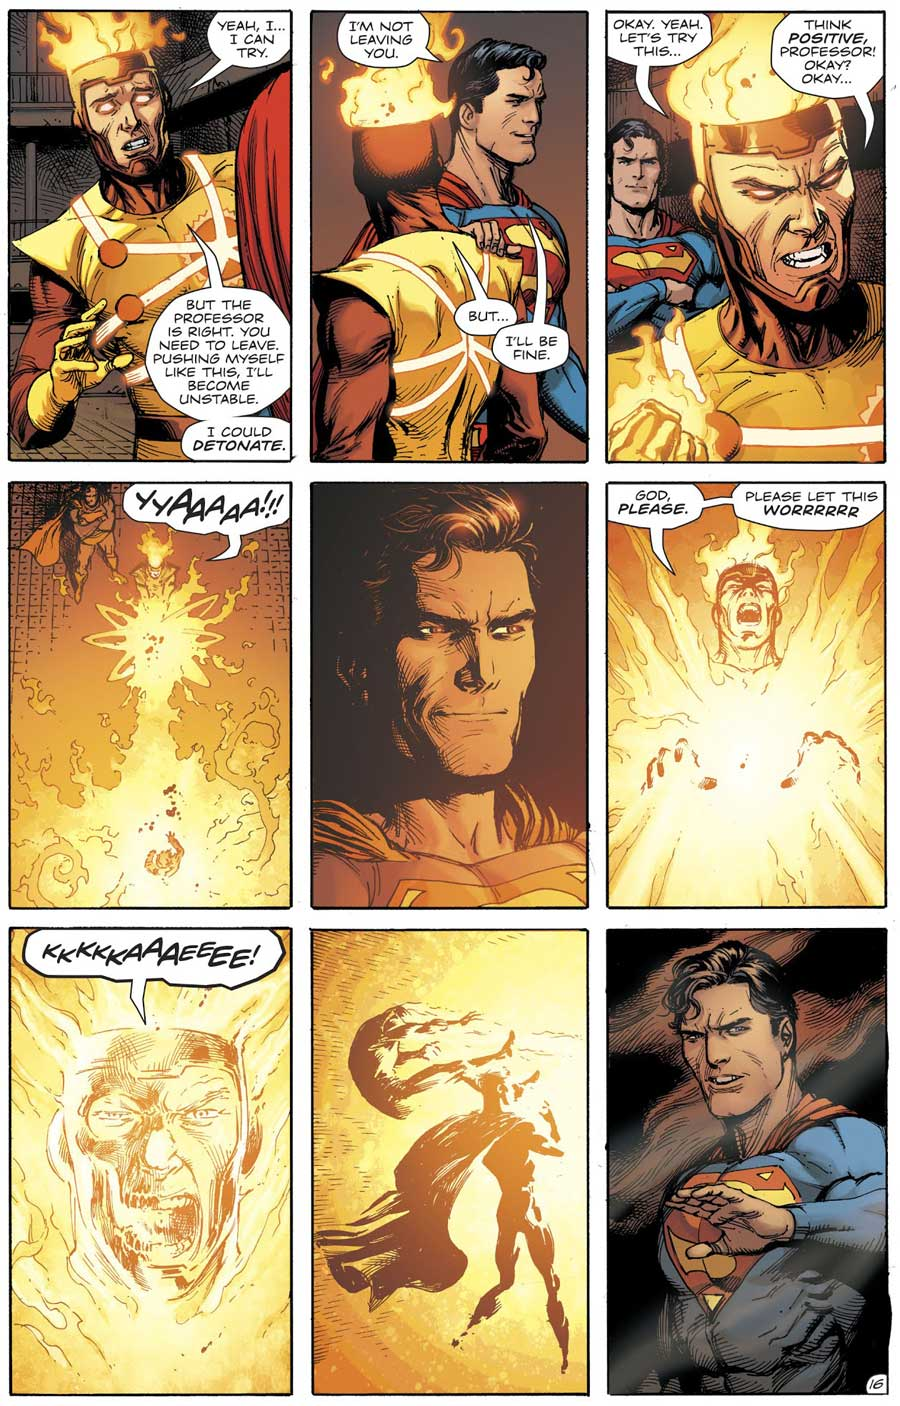 Doomsday Clock #8 by Geoff Johns and Gary Frank featuring Firestorm